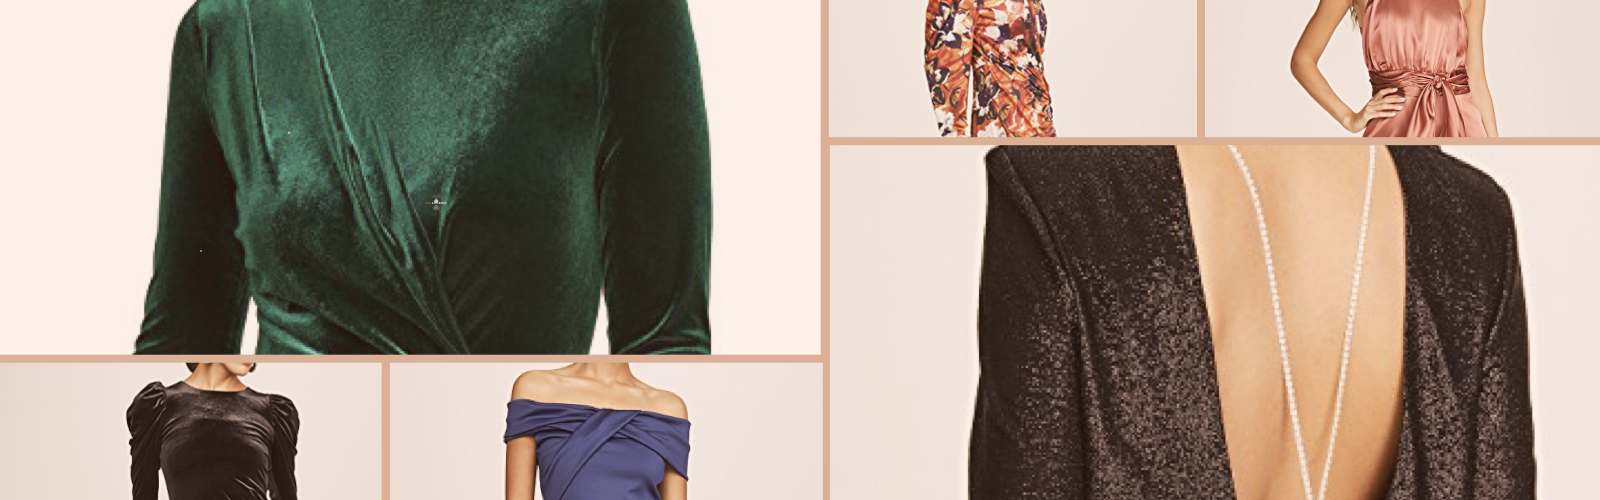 Fall Wedding What to Wear to as a Guest